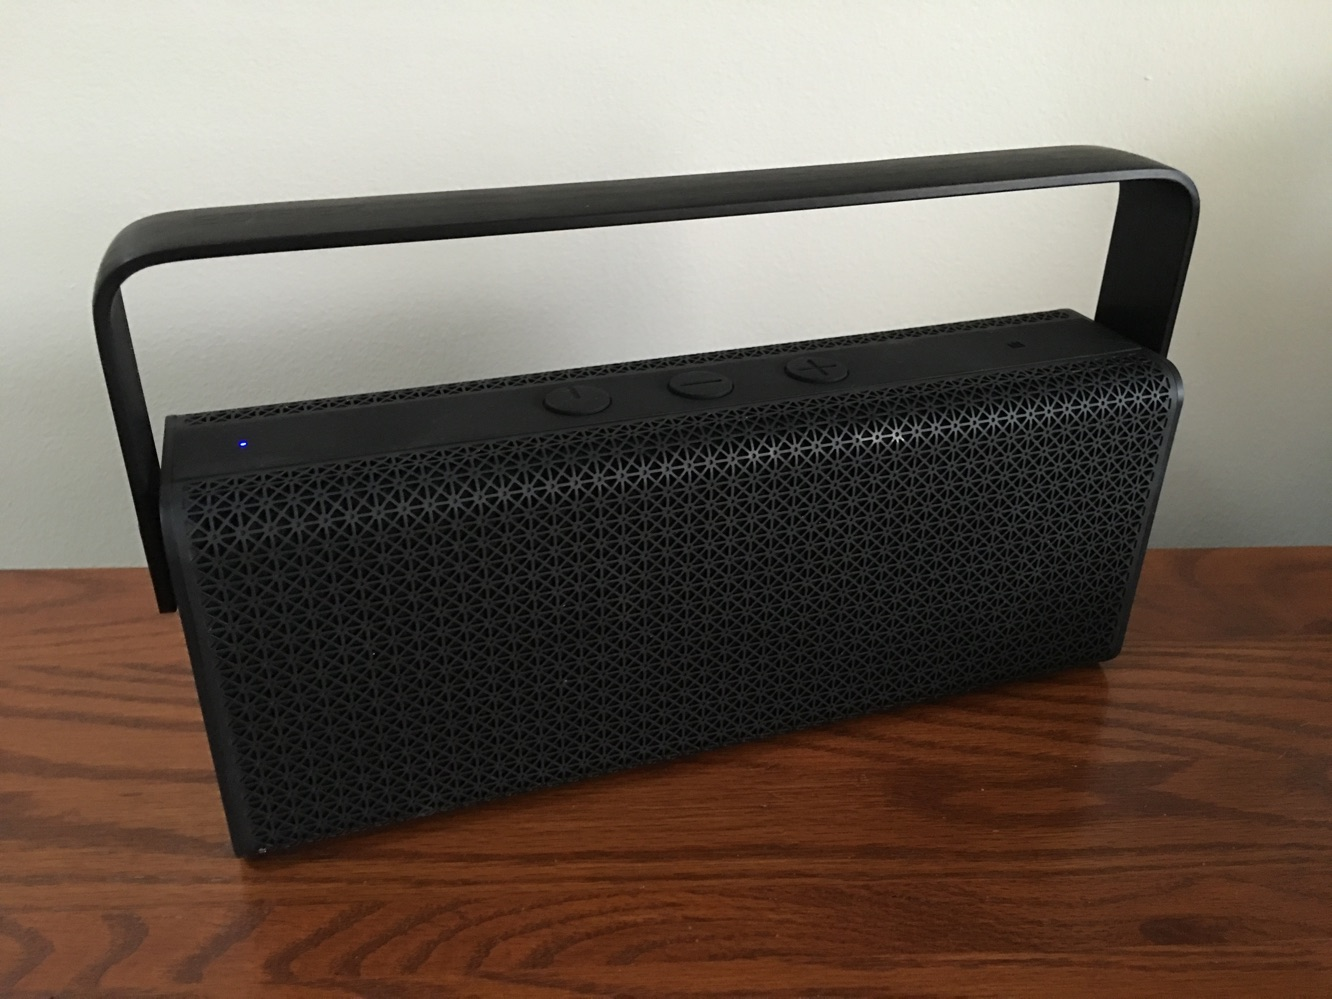 Review: Edifier MP700 Rave Portable Bluetooth Speaker